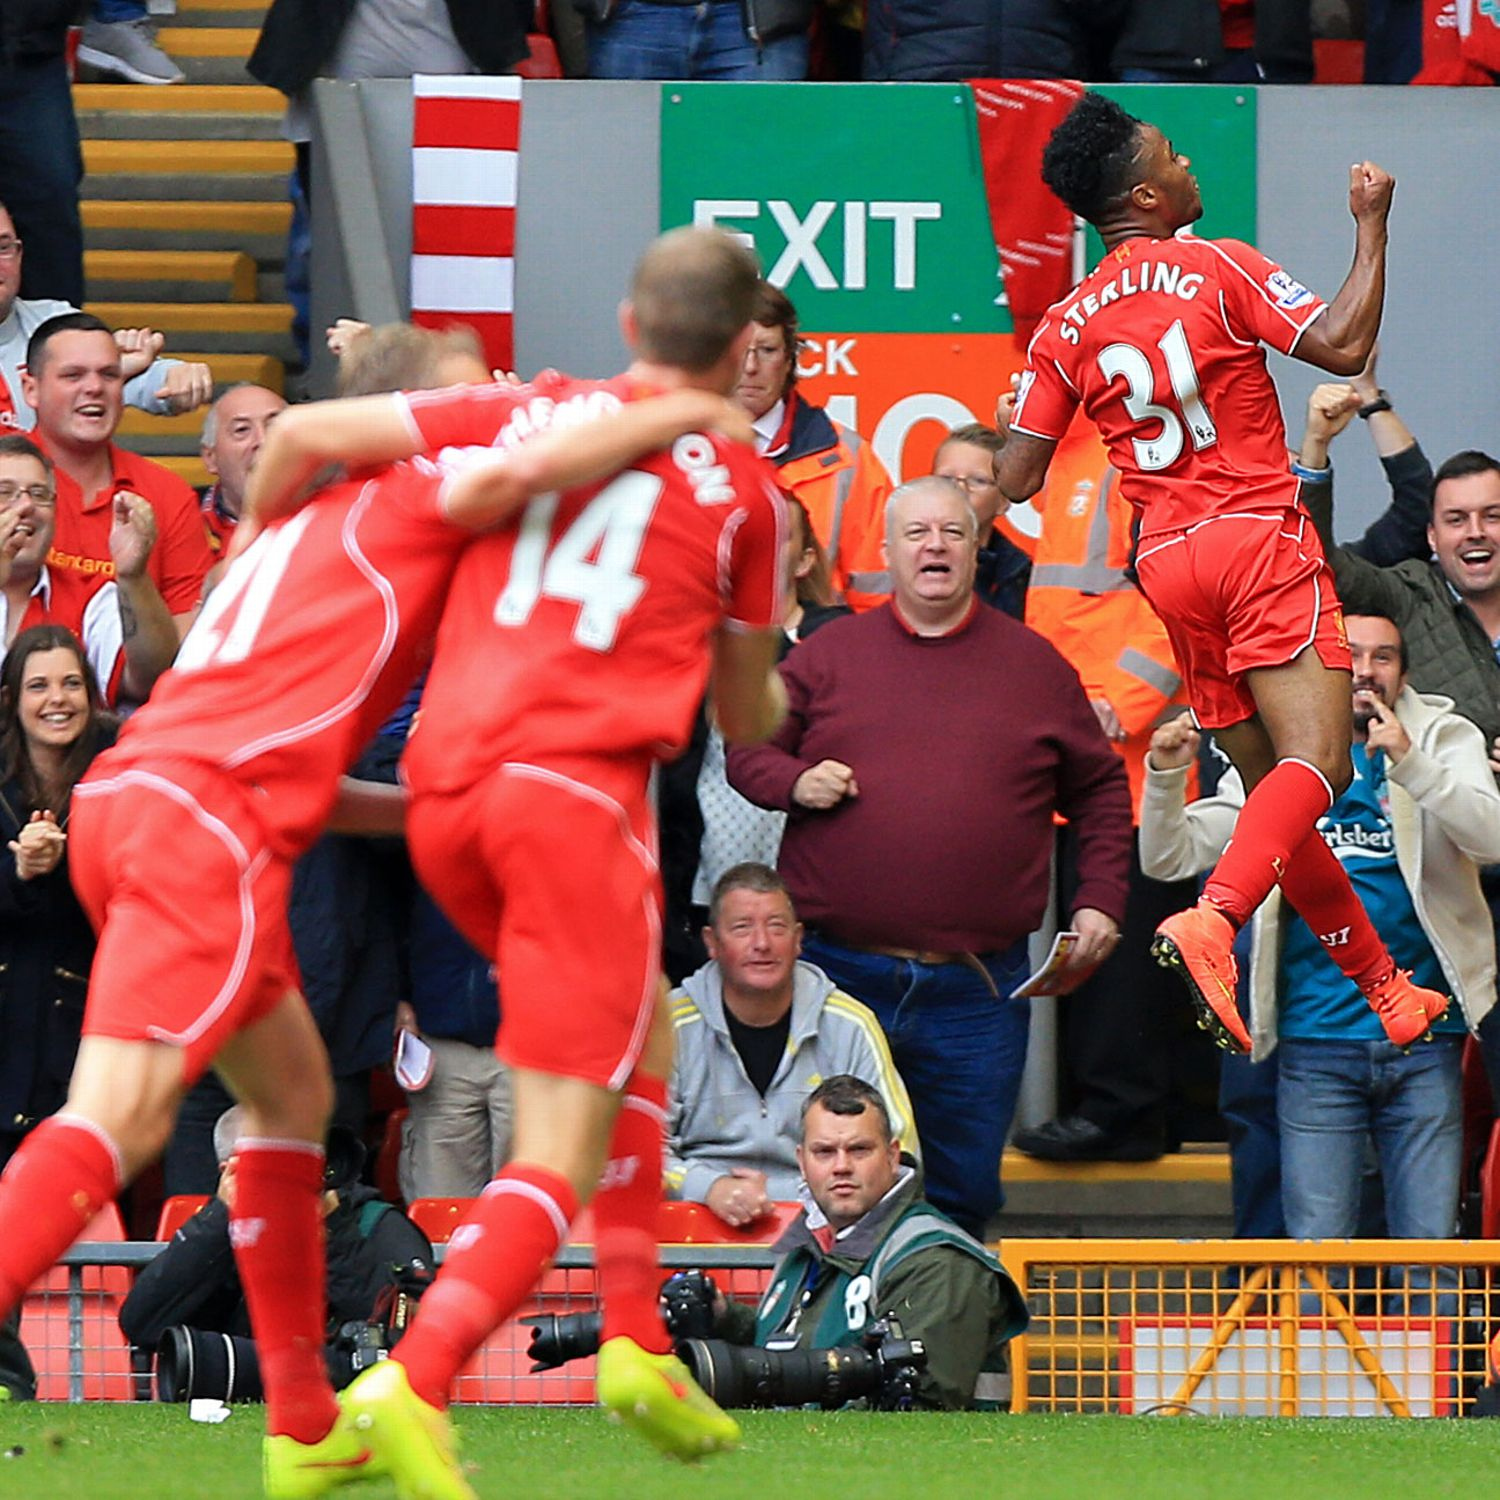 Liverpool V Barcelona Live Matchday Blog: Richard Jolly's Three Points From Liverpool Vs